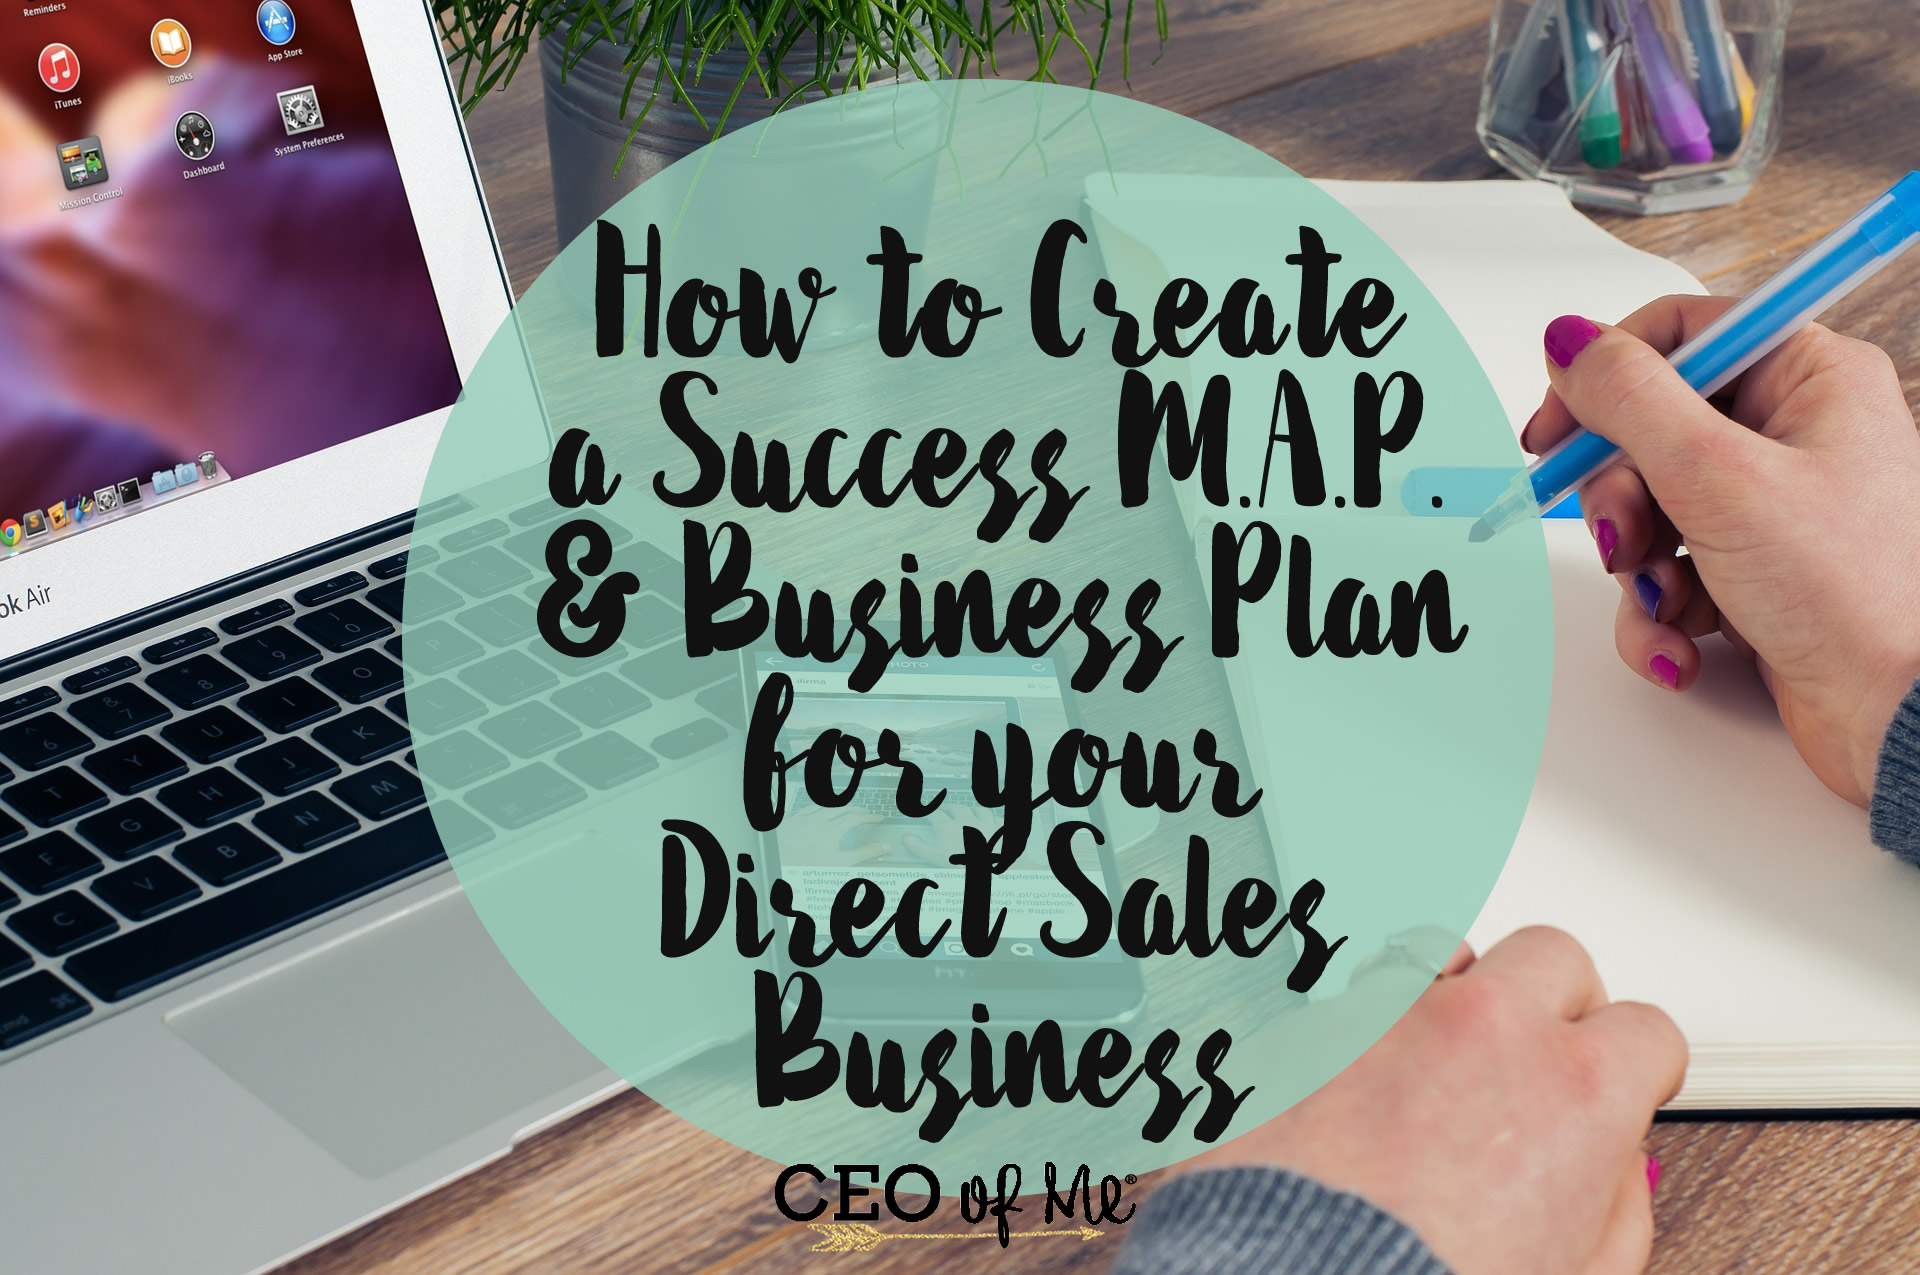 How to Create your Success MAP and Business Plan for your Direct Sales Business by CEO of Me